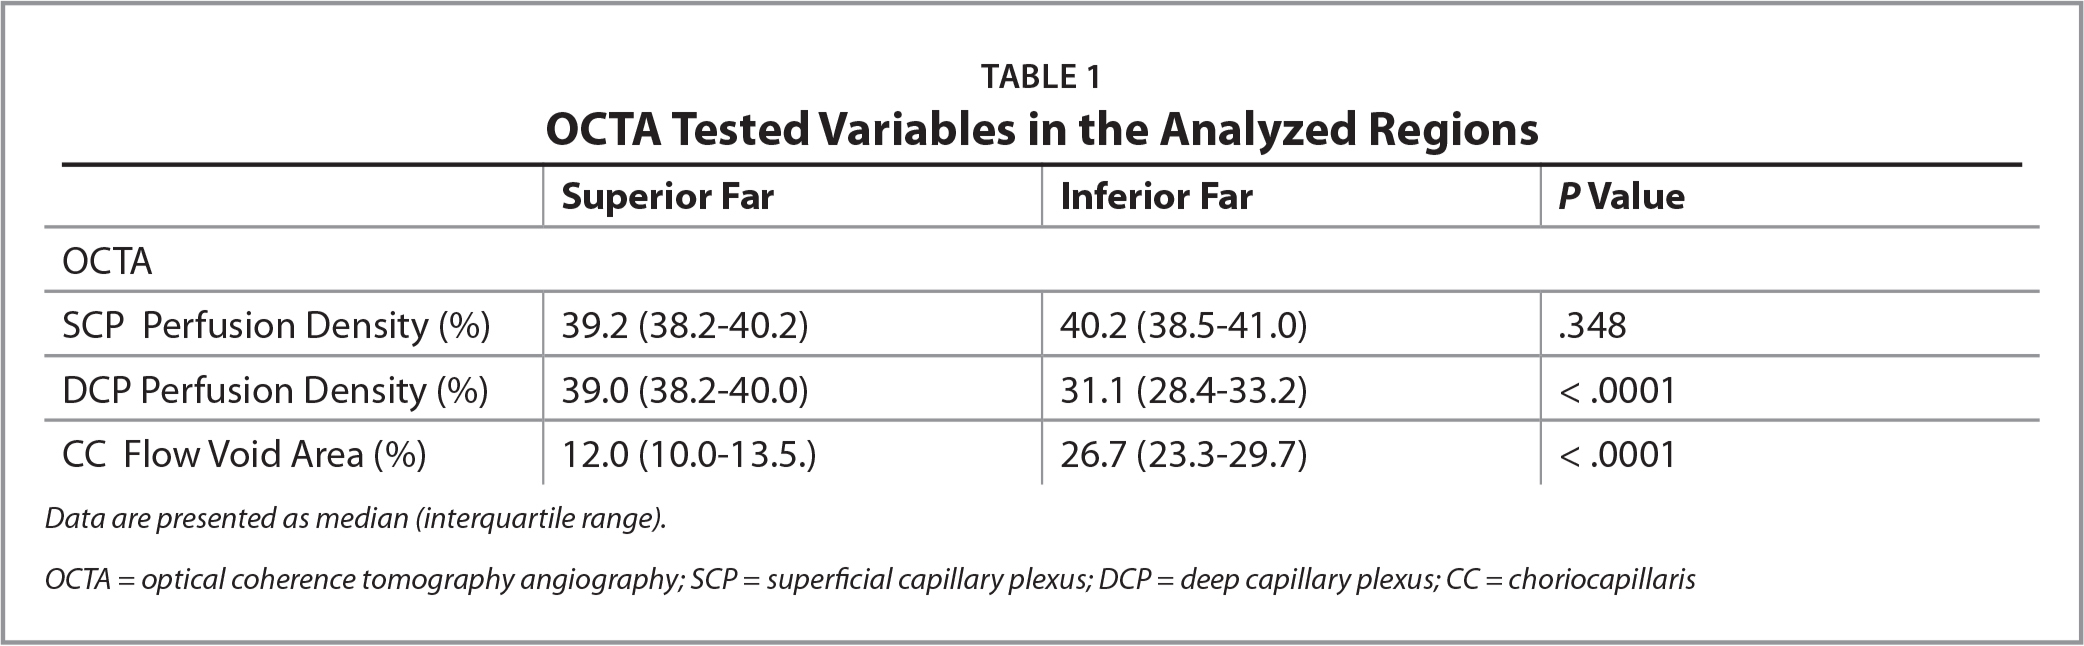 OCTA Tested Variables in the Analyzed Regions